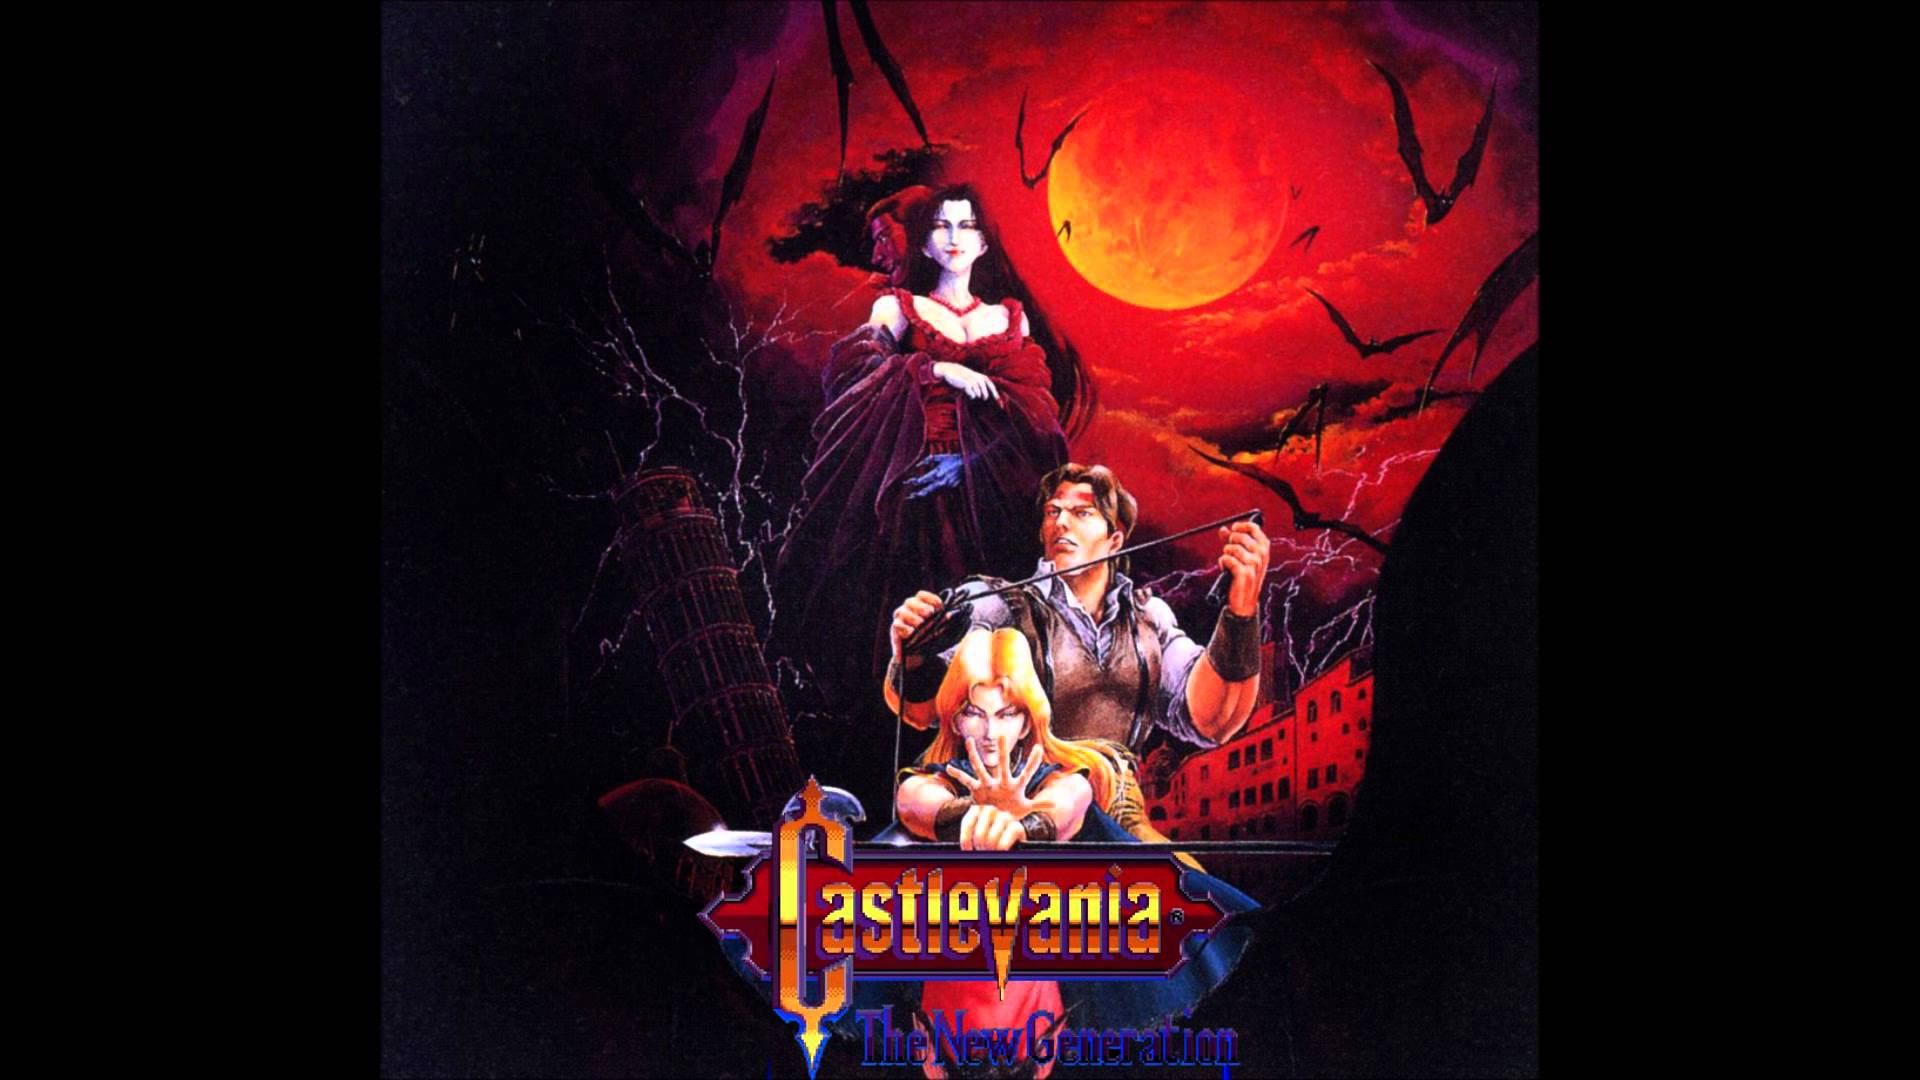 Castlevania Bloodlines Wallpapers Video Game Hq Castlevania